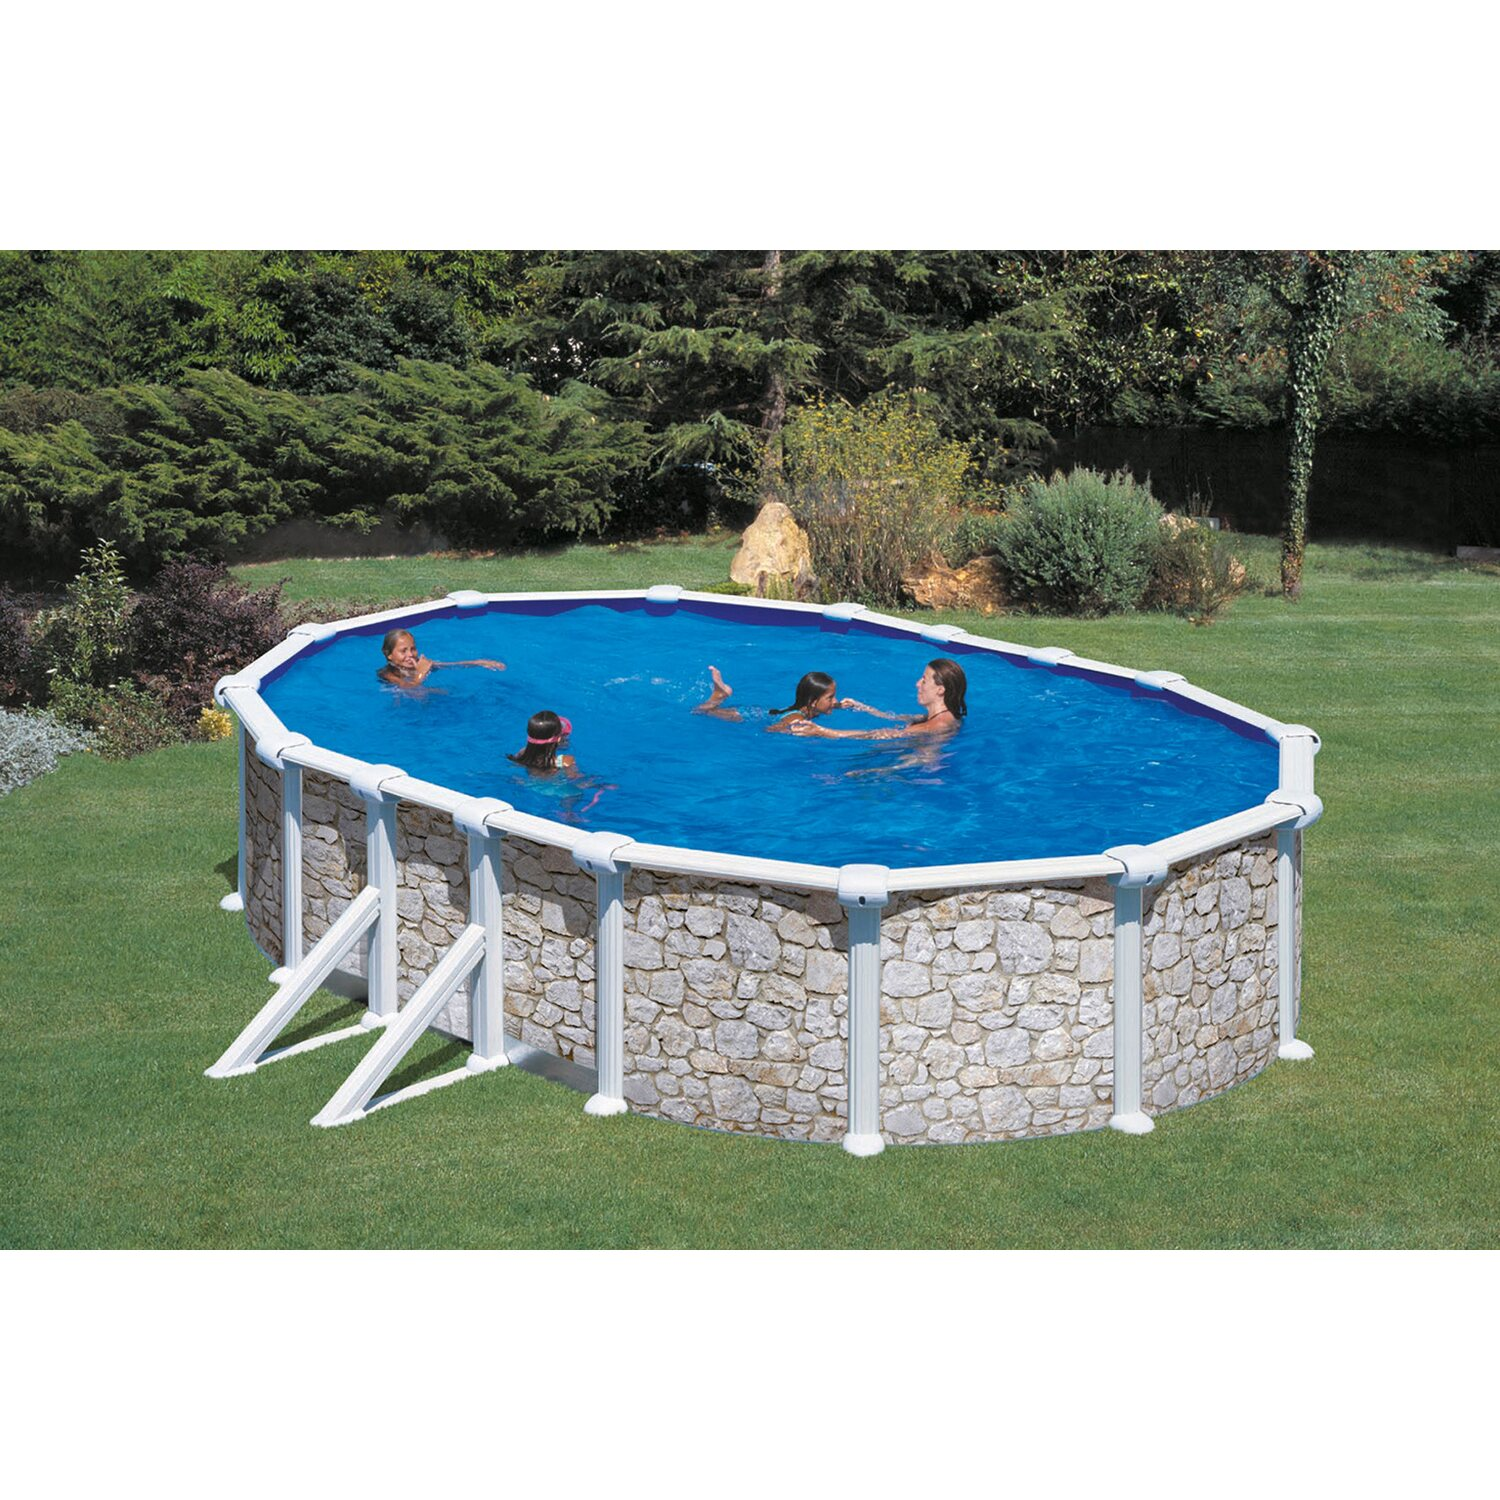 Summer fun stahlwand pool set valencia 500 cm x 300 cm x for Holzpool obi